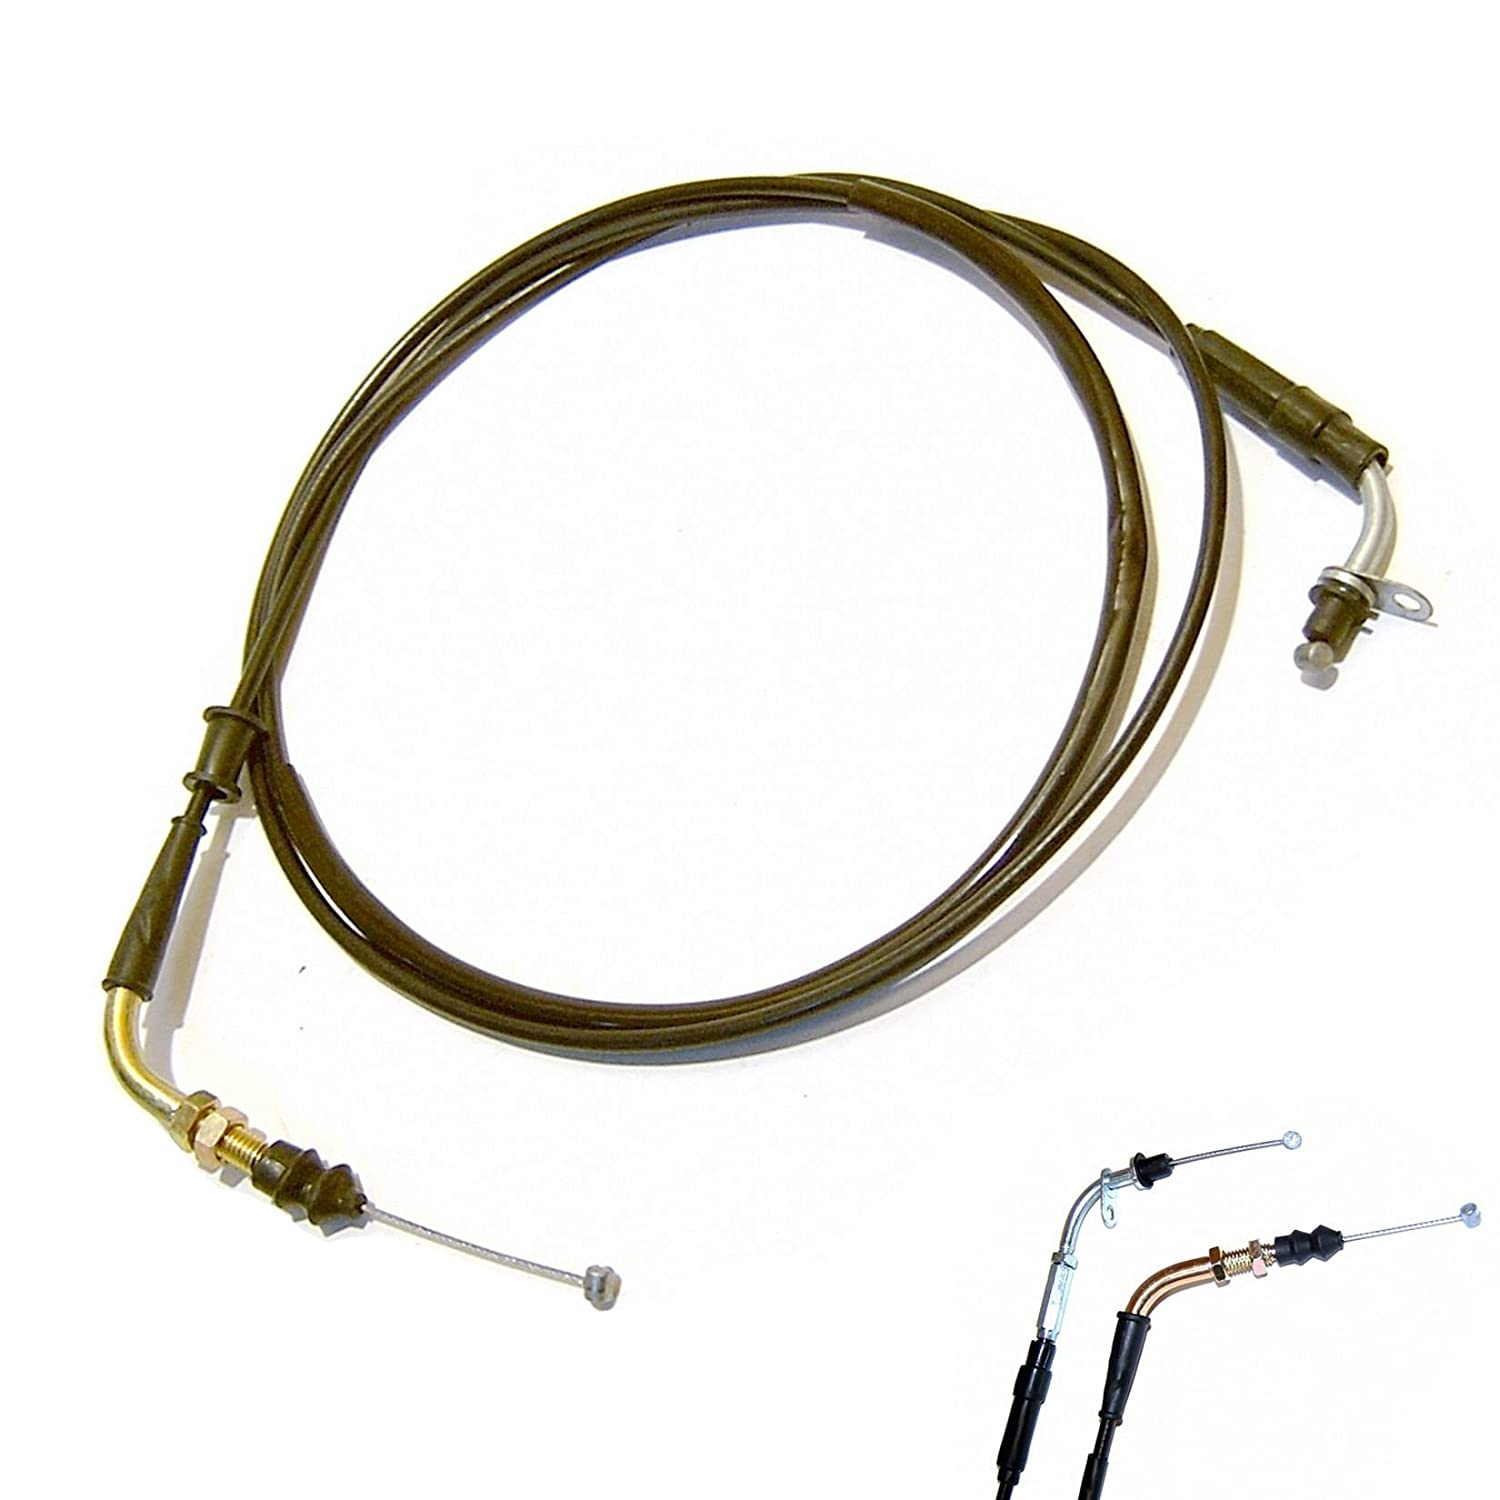 Amazon.com: THROTTLE CABLE 83